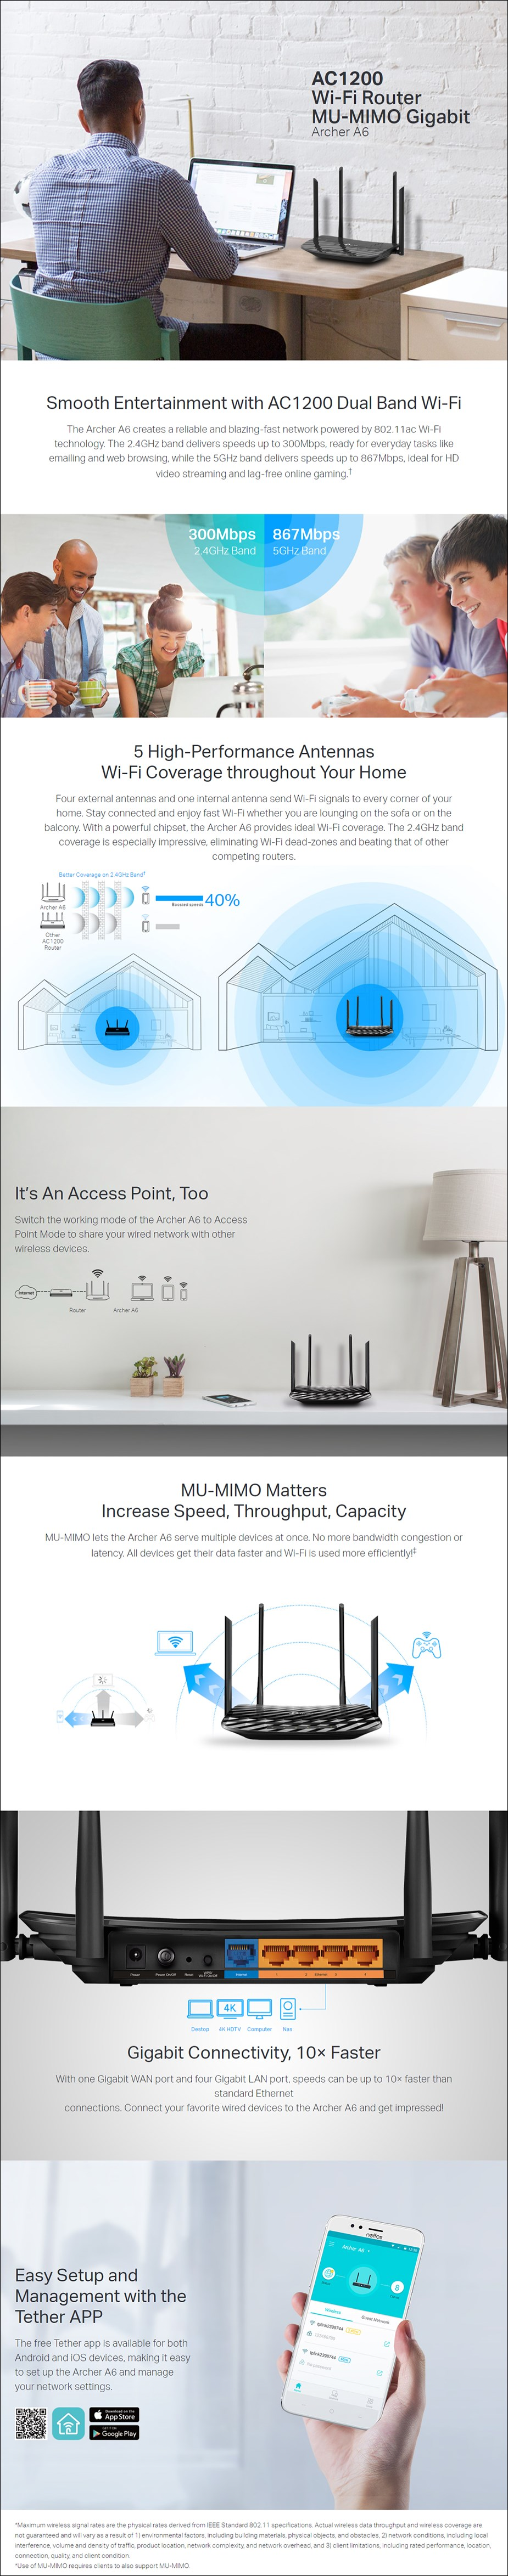 TP-Link Archer A6 AC1200 Dual-Band MU-MIMO Gigabit Router - Overview 1